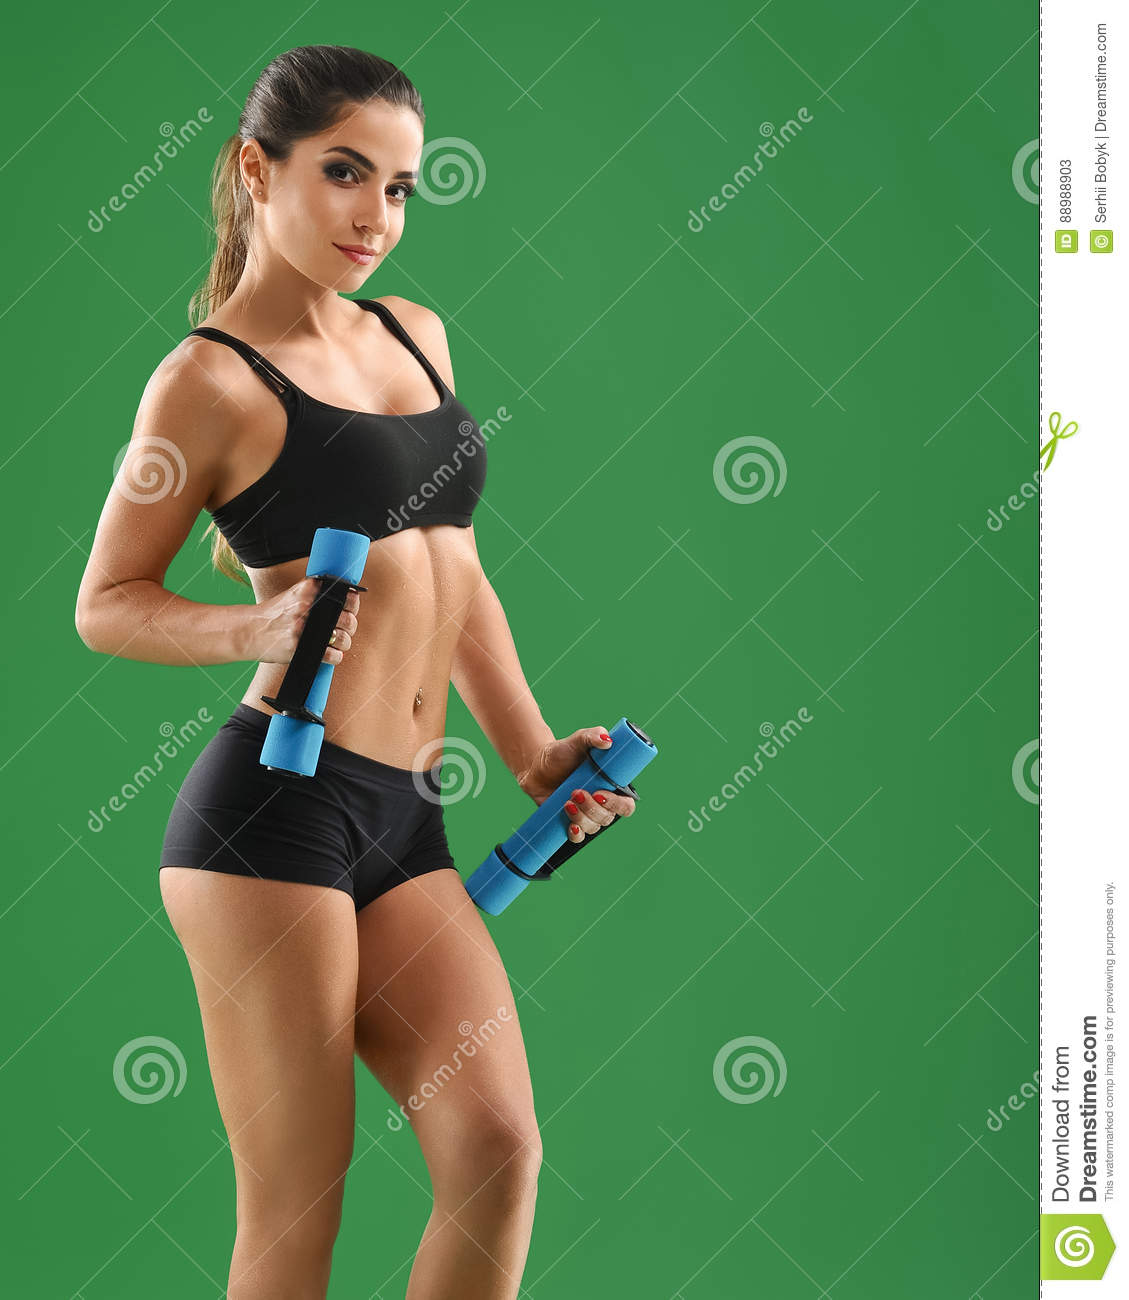 3ddab189a Studio shot of a gorgeous fitness model with perfectly shaped sporty body  exercising with dumbbells smiling happily healthy lifestyle athletics  activity ...